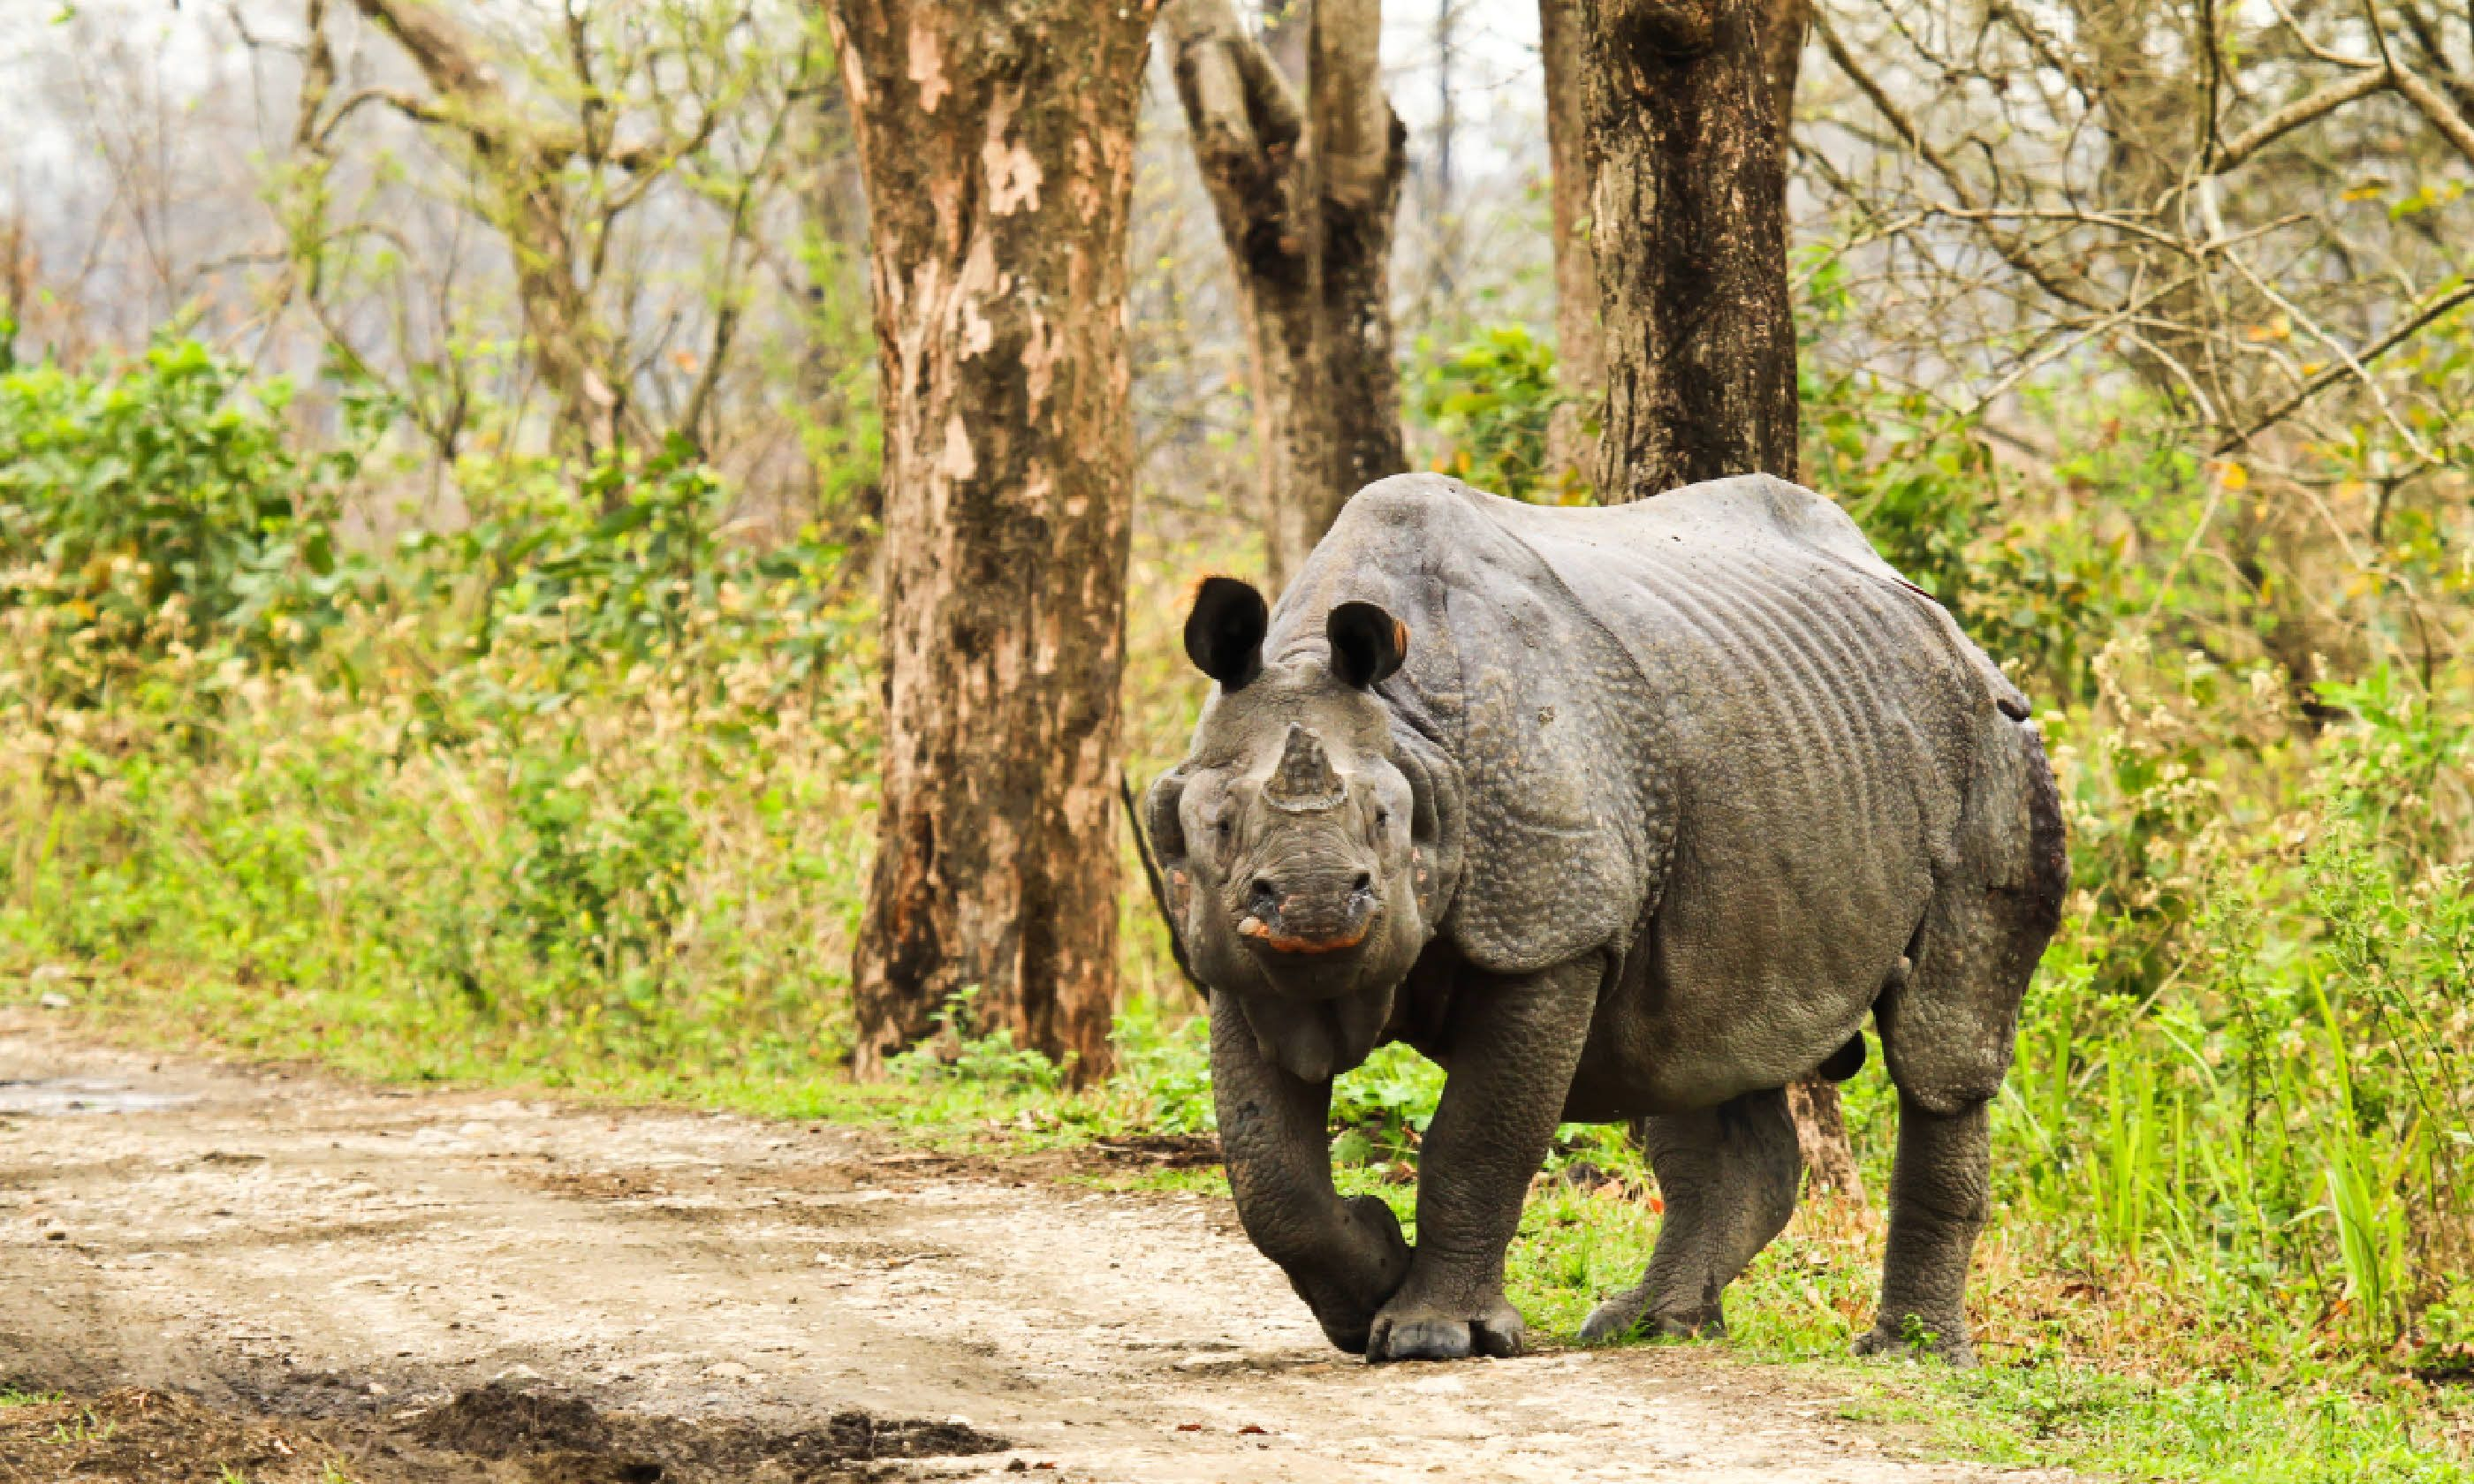 Rhinoceros in Kaziranga National Park (Shutterstock)